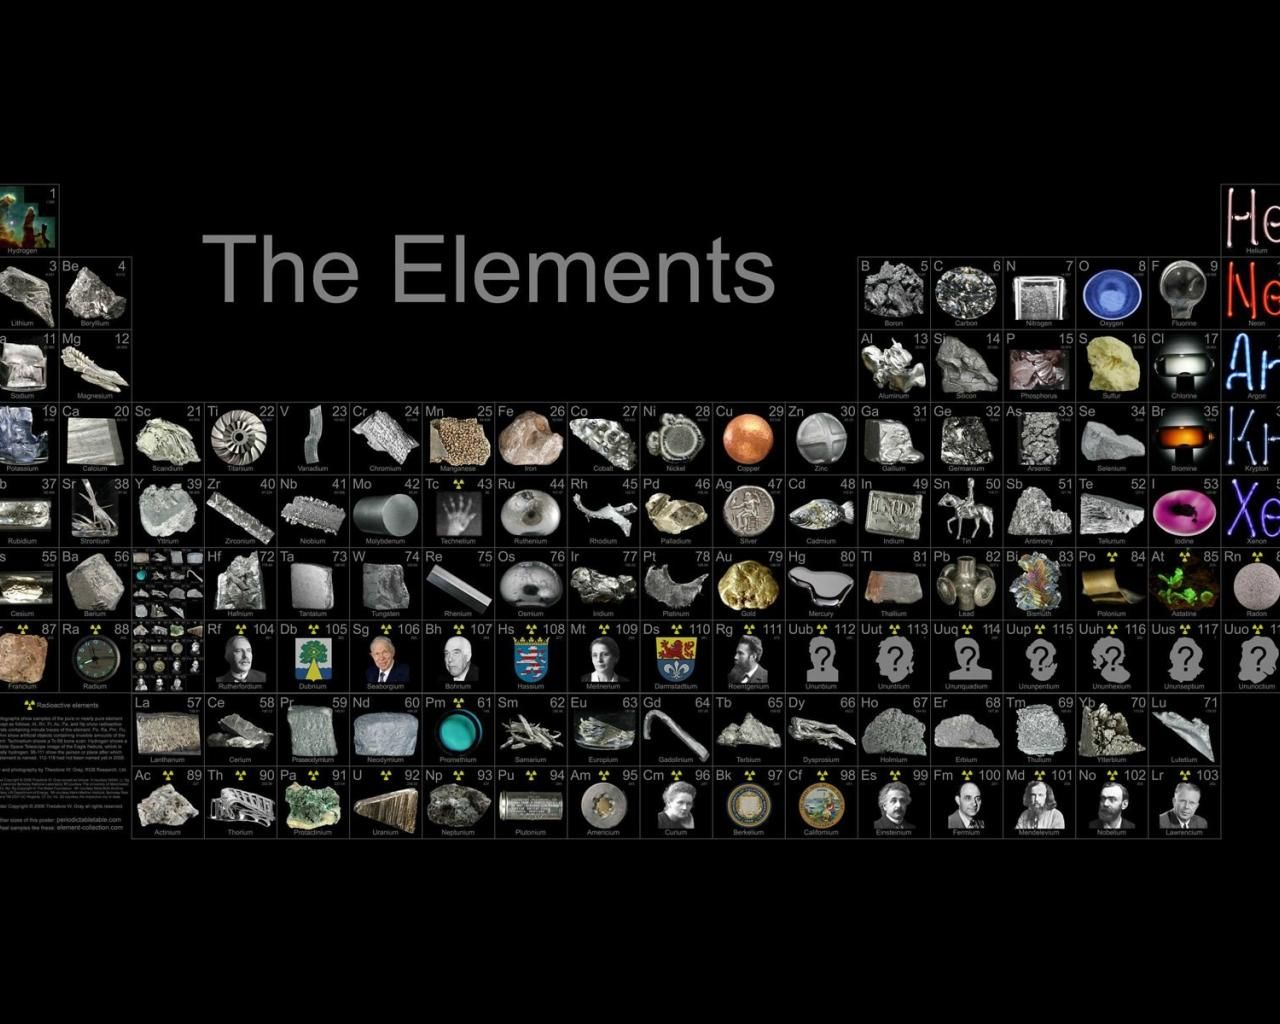 Elements periodic table chemistry science hd wallpaper wallpaper elements periodic table chemistry science hd wallpaper wallpaper urtaz Images